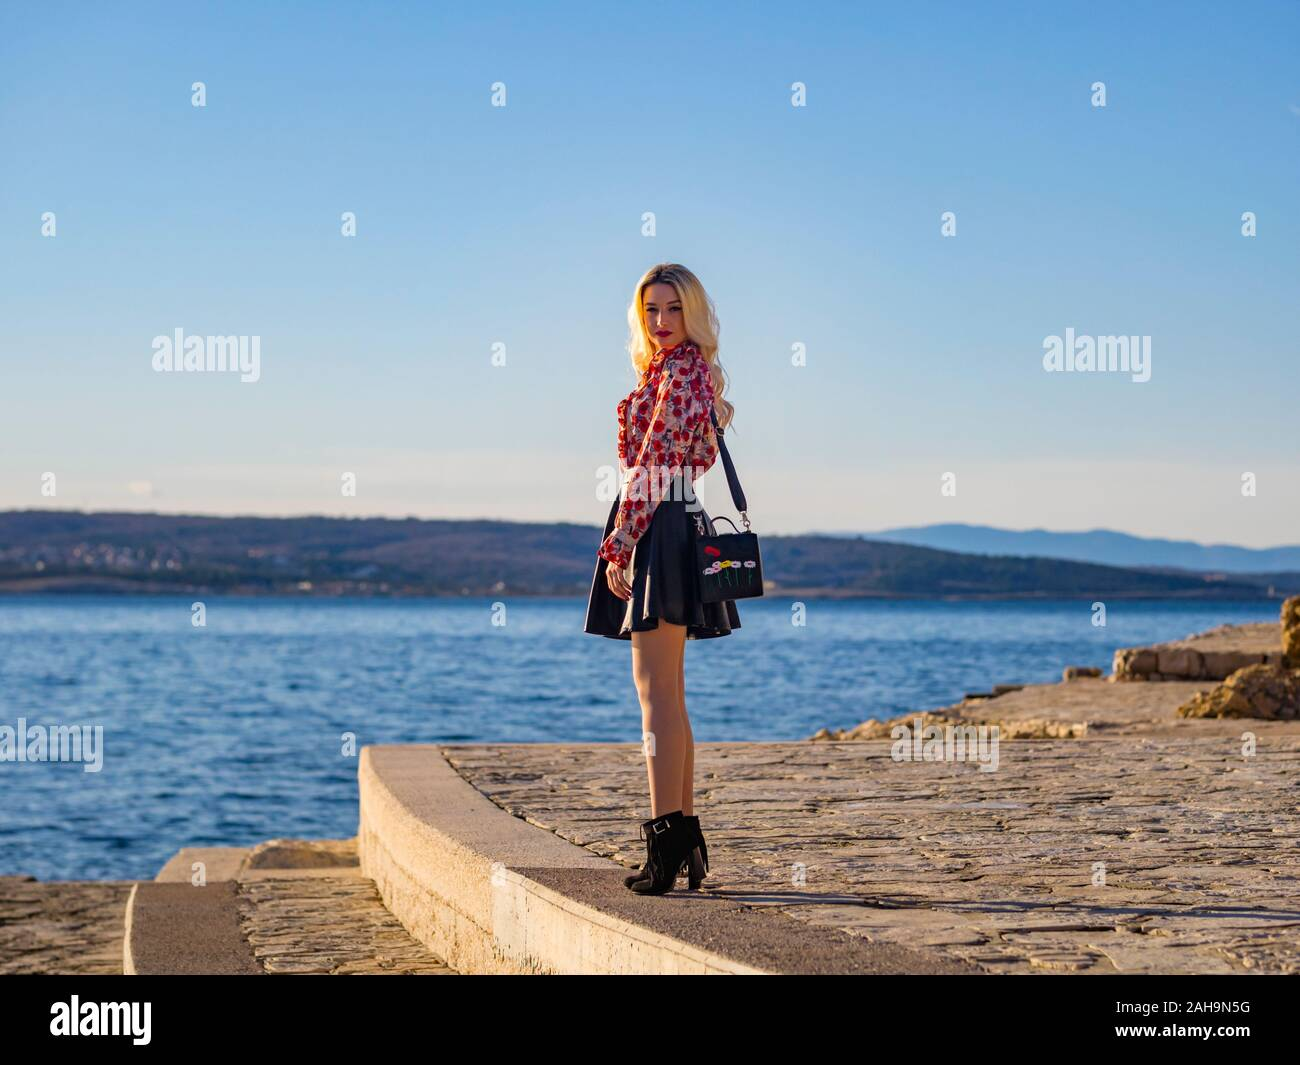 Fanciful blonde young lady standing seaside woman serious looking at camera eyeshot eyes eye-contact MR model-released release figure profile sleek Stock Photo